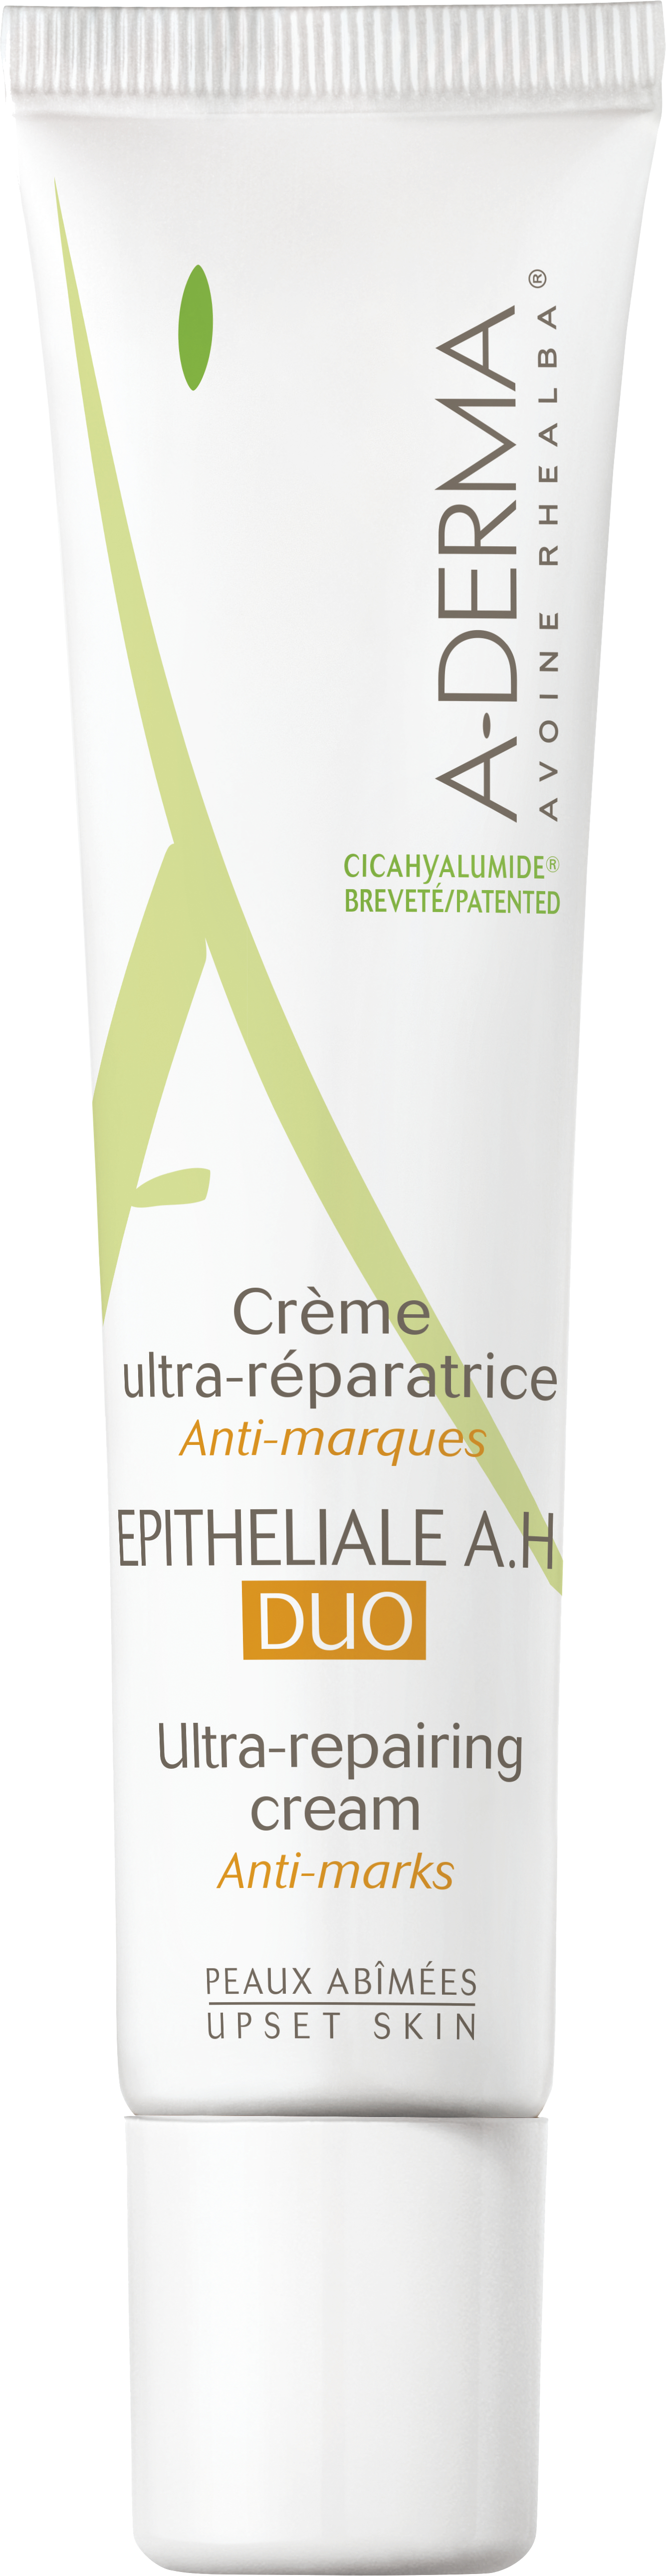 A-Derma Epitheliale A.H duo ultra repairing cream 40 ml